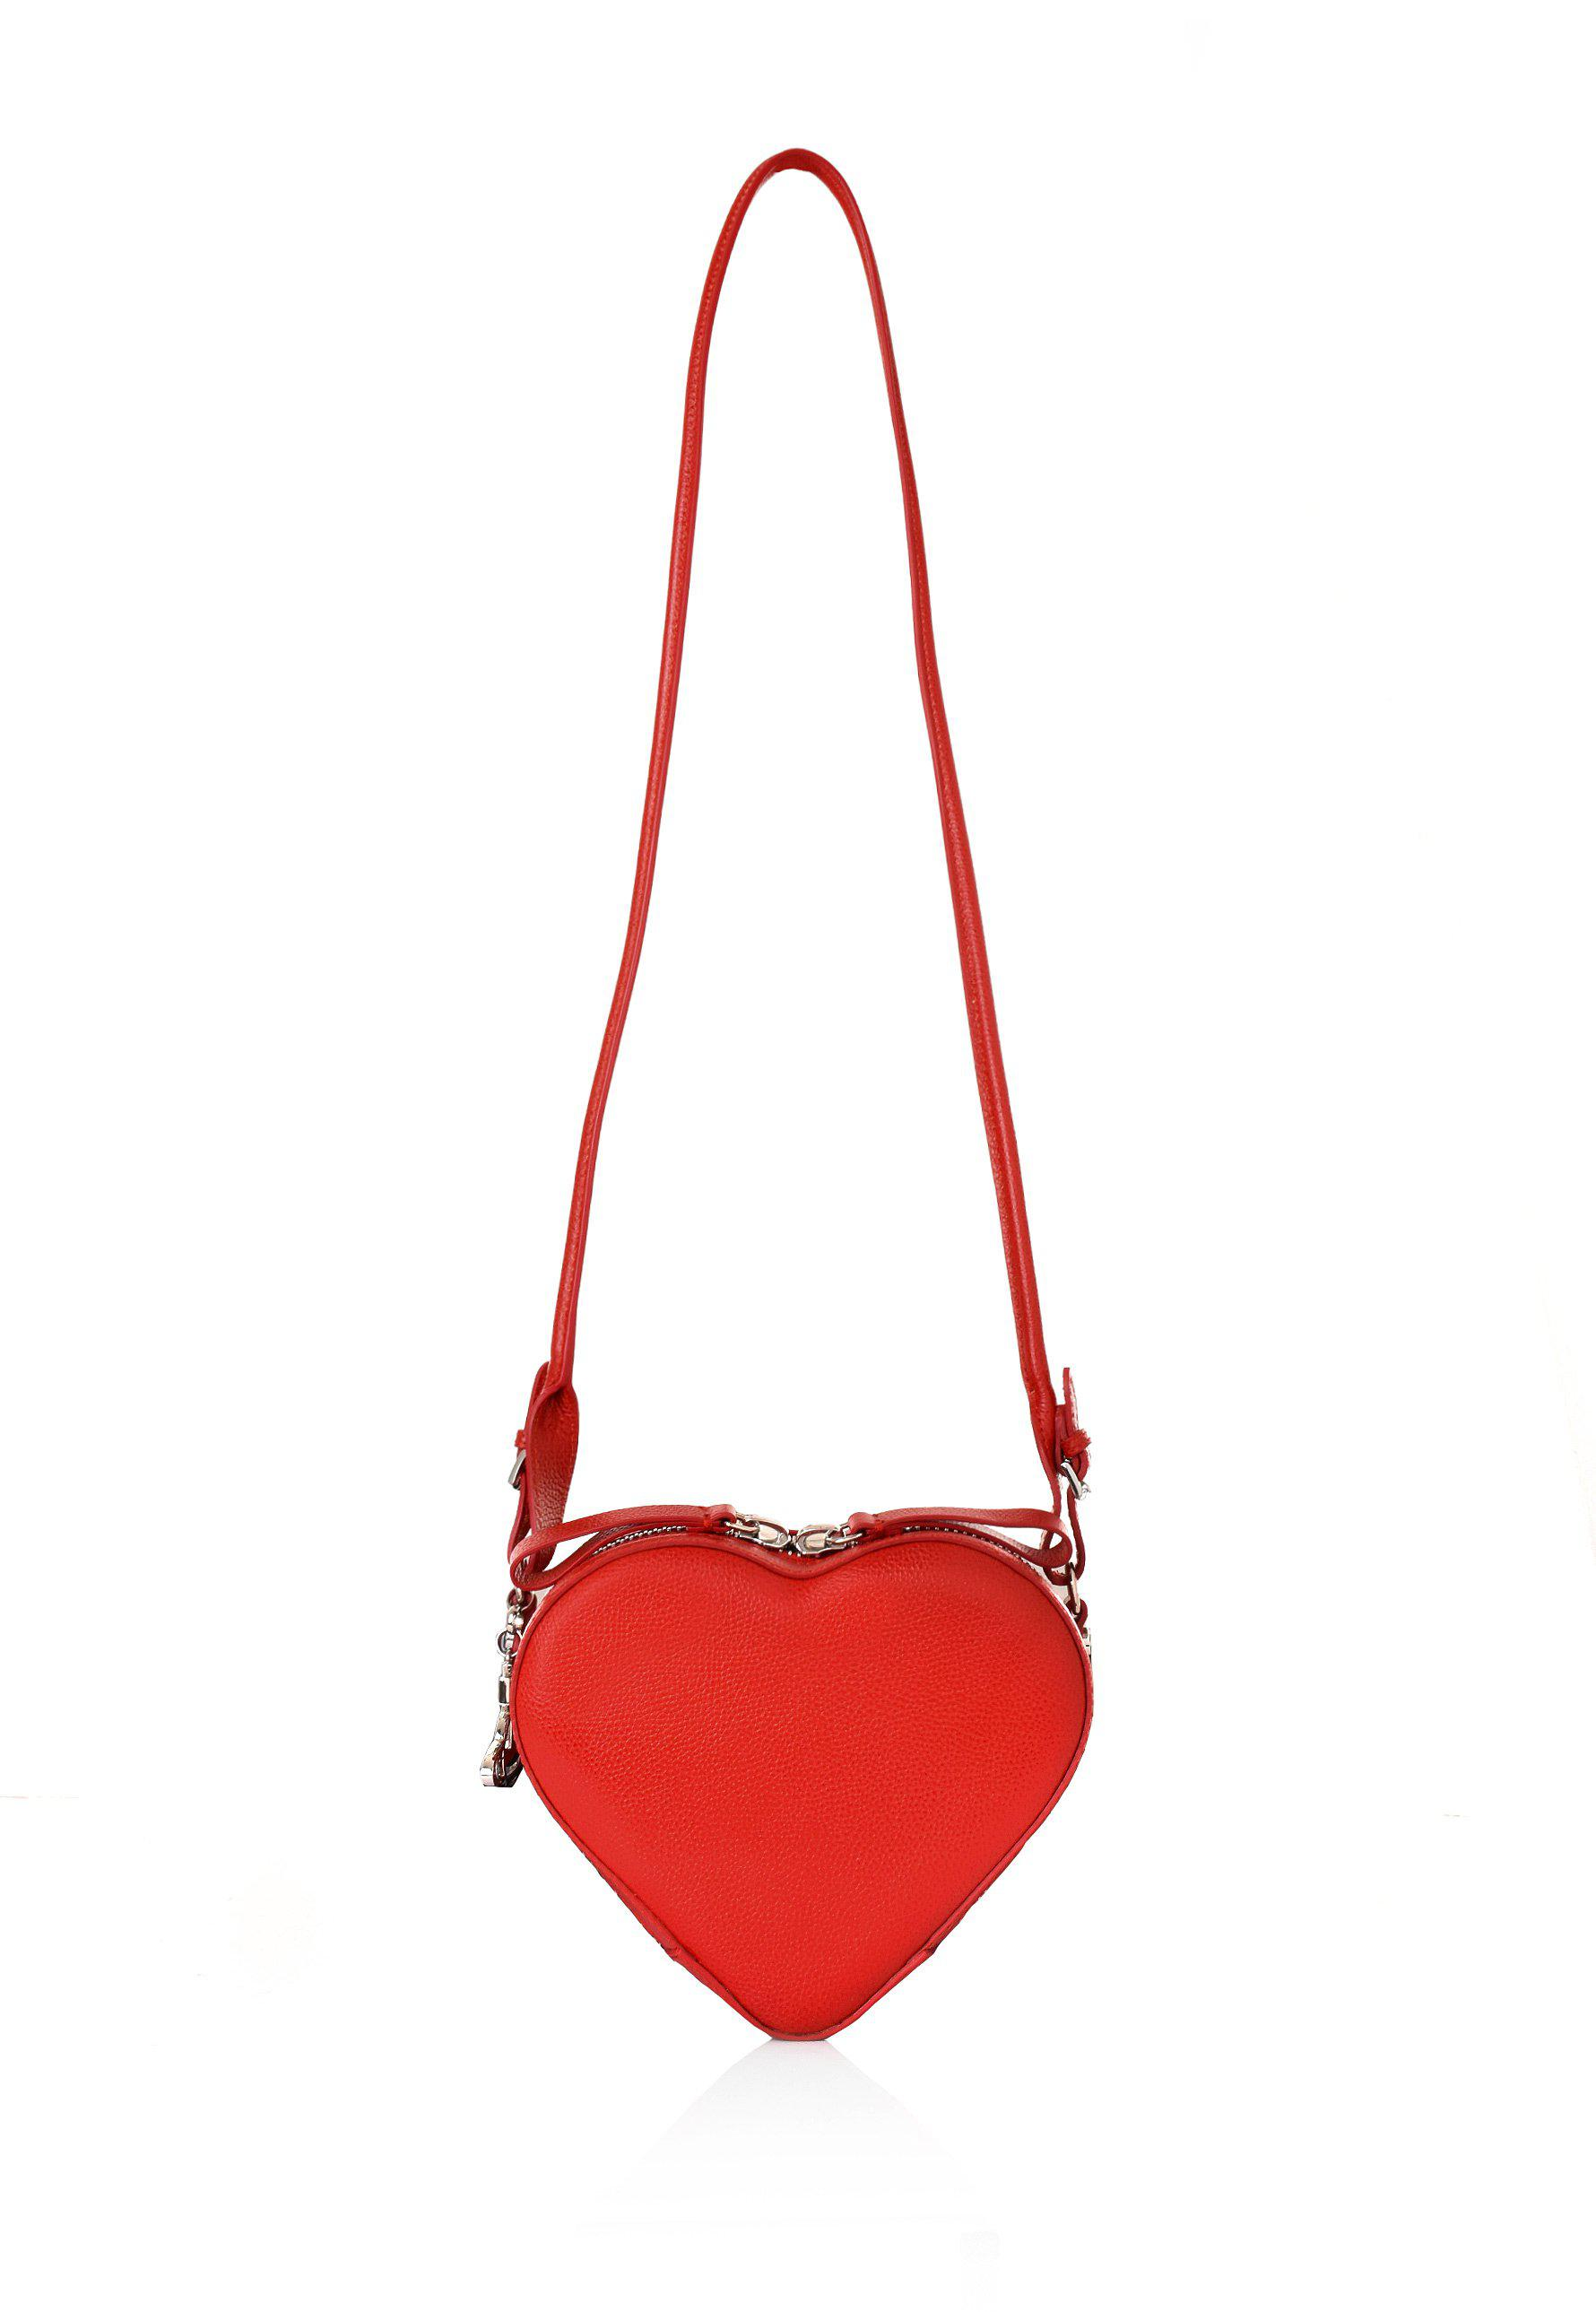 c163d544856 Vivienne Westwood Johanna Heart Crossbody Bag 42020028 Red in Red - Lyst